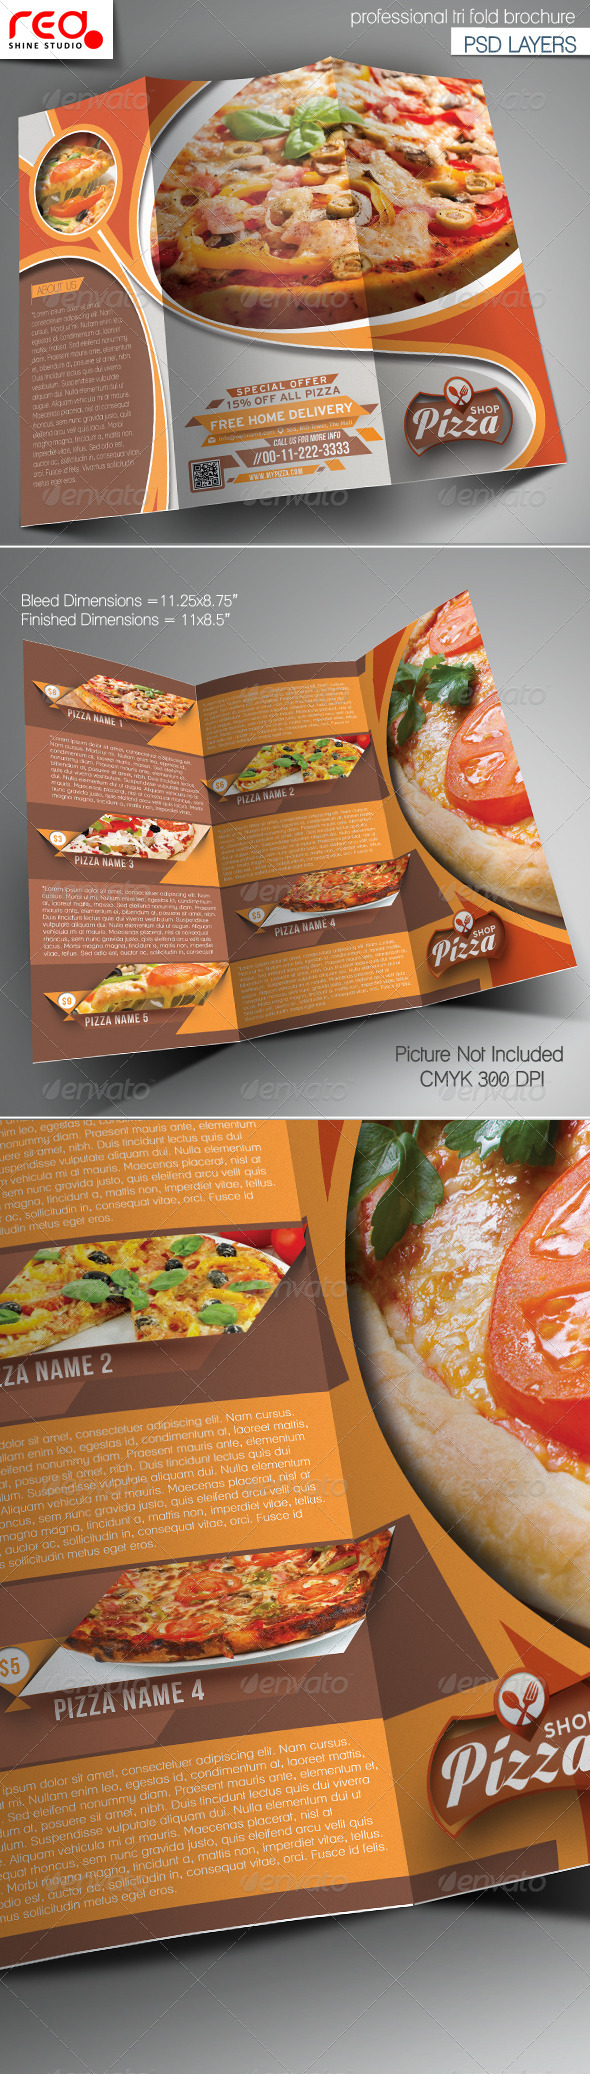 GraphicRiver Pizza Shop Trifold Brochure Template 7228096